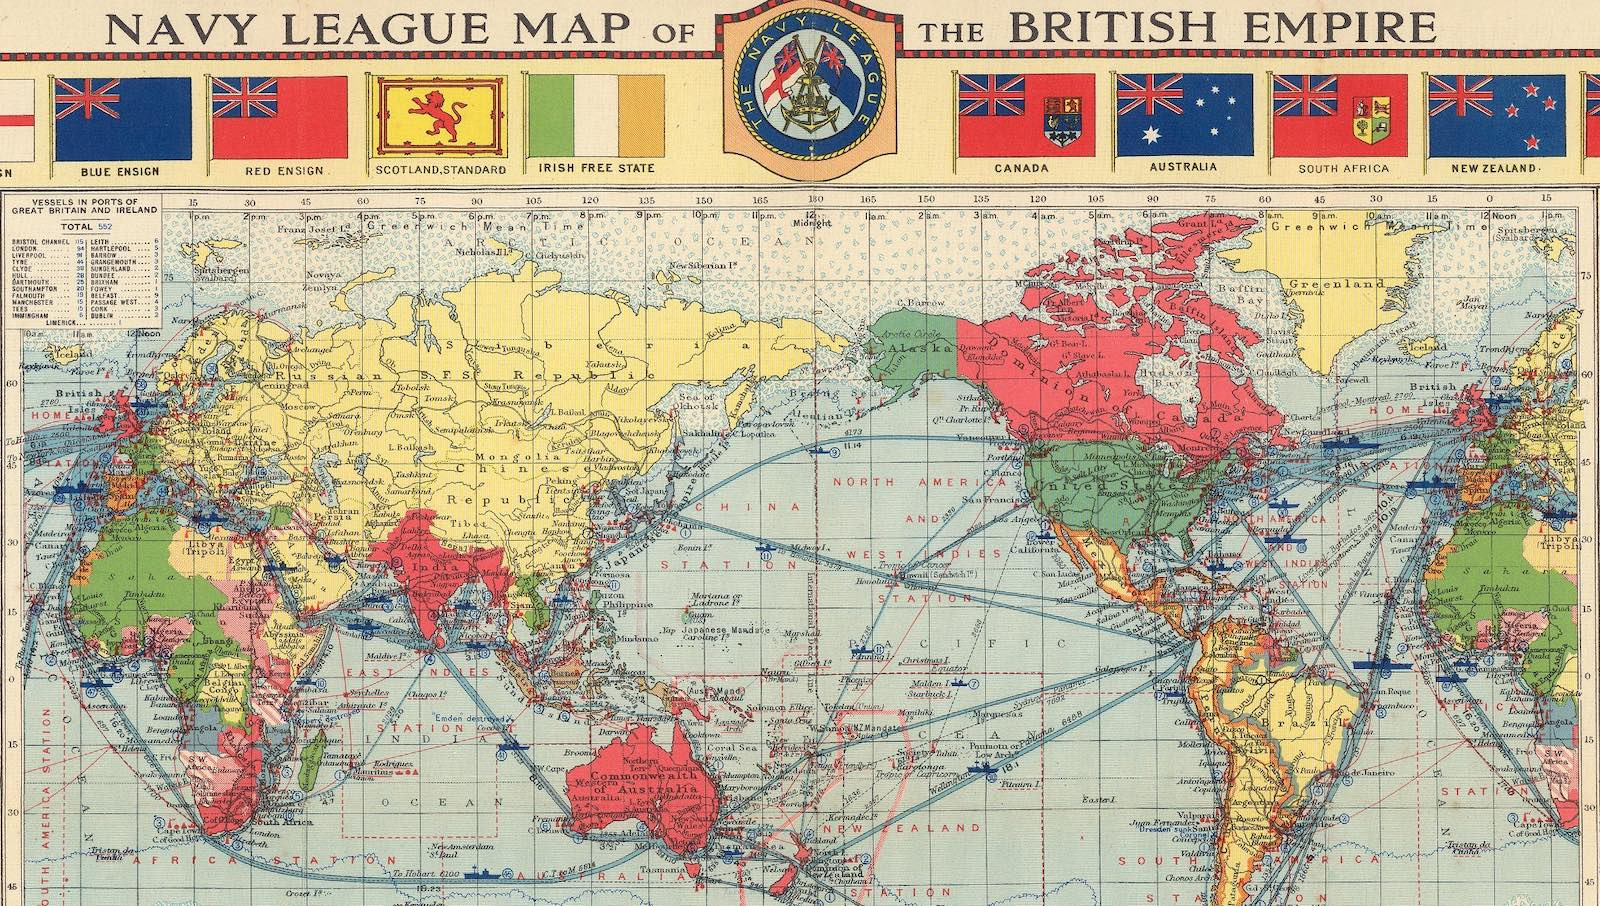 Map by London Geographical Institute 1922 (Photo: David Rumsey Map Collection)